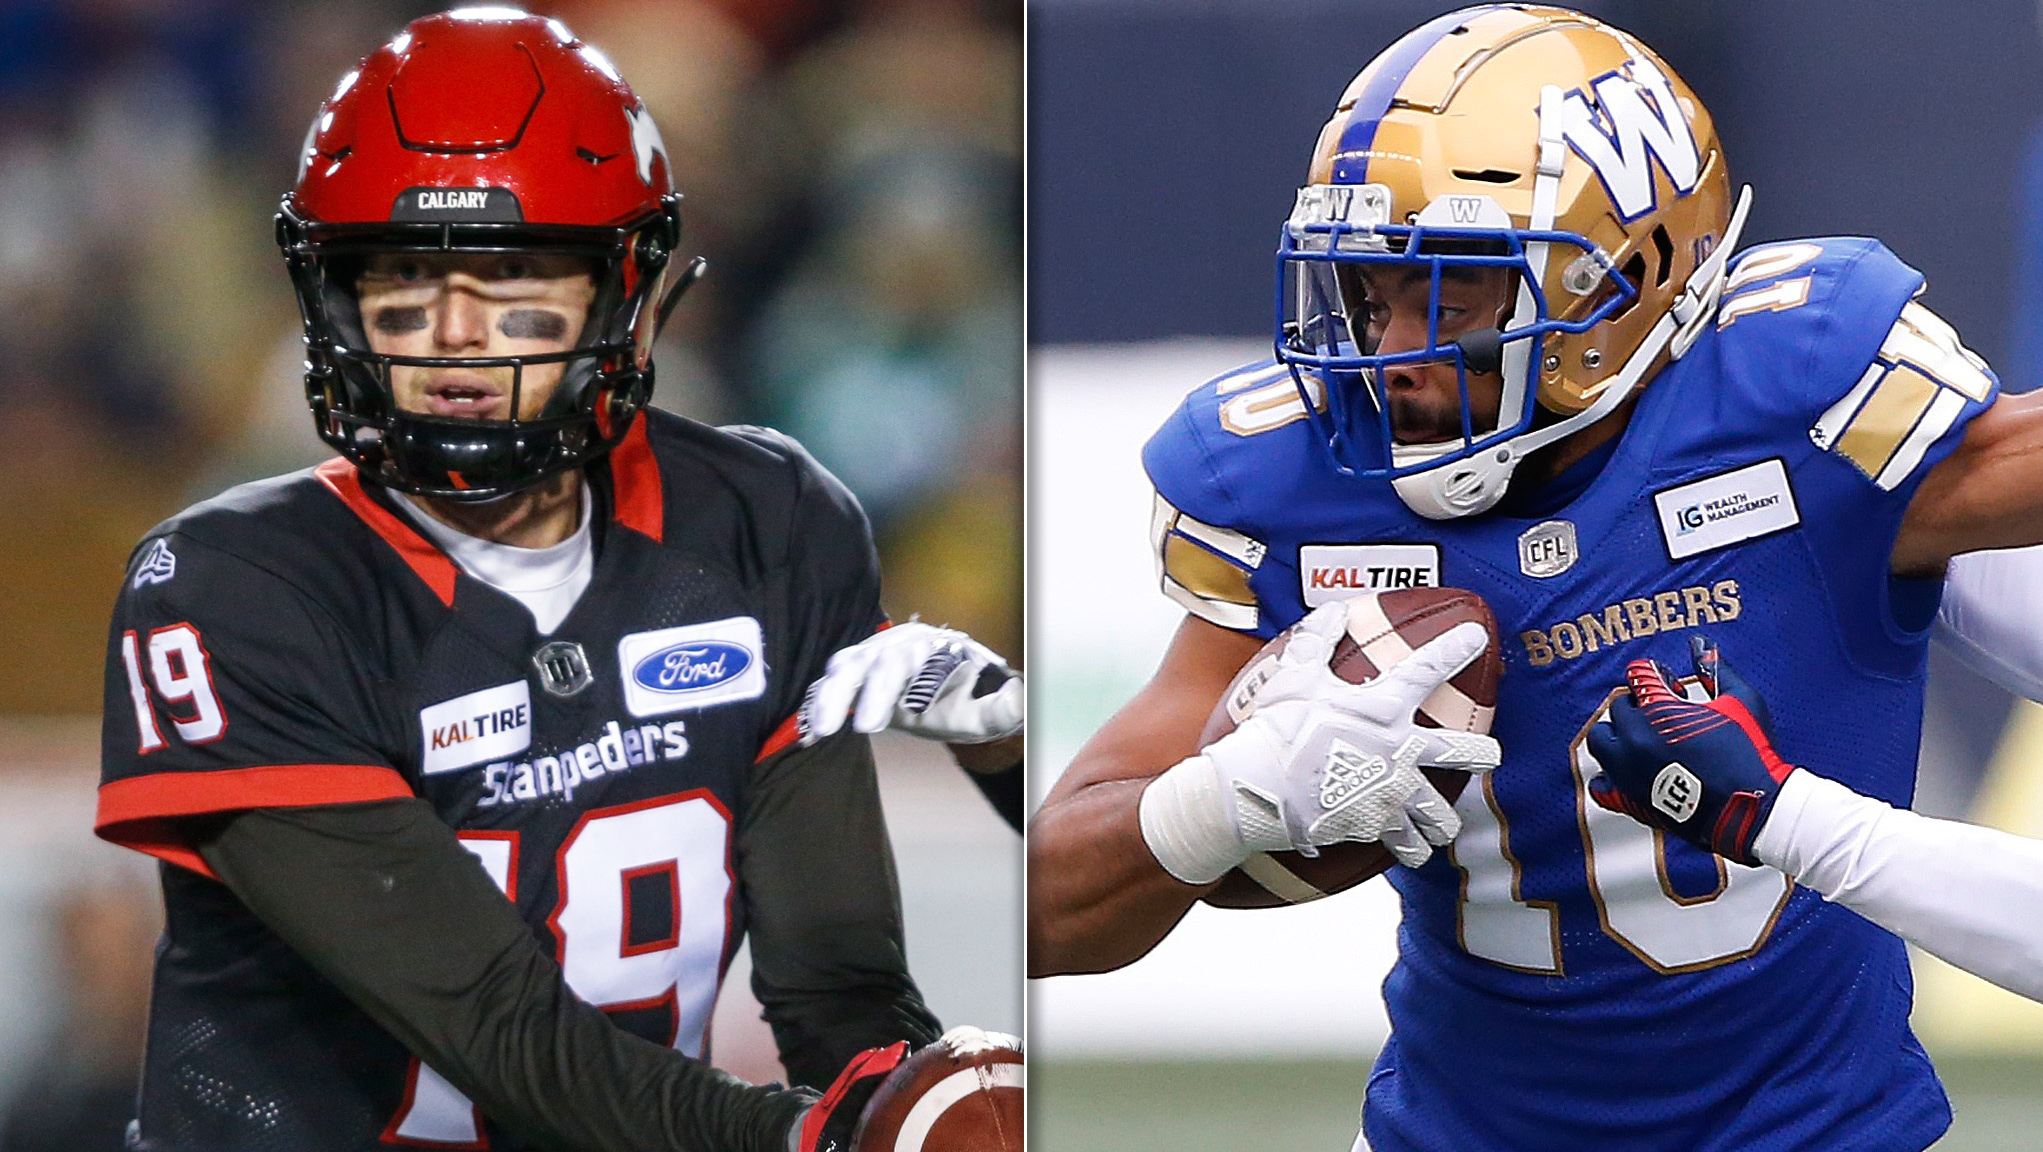 West in the balance as Stamps, Bombers clash - CFL.ca